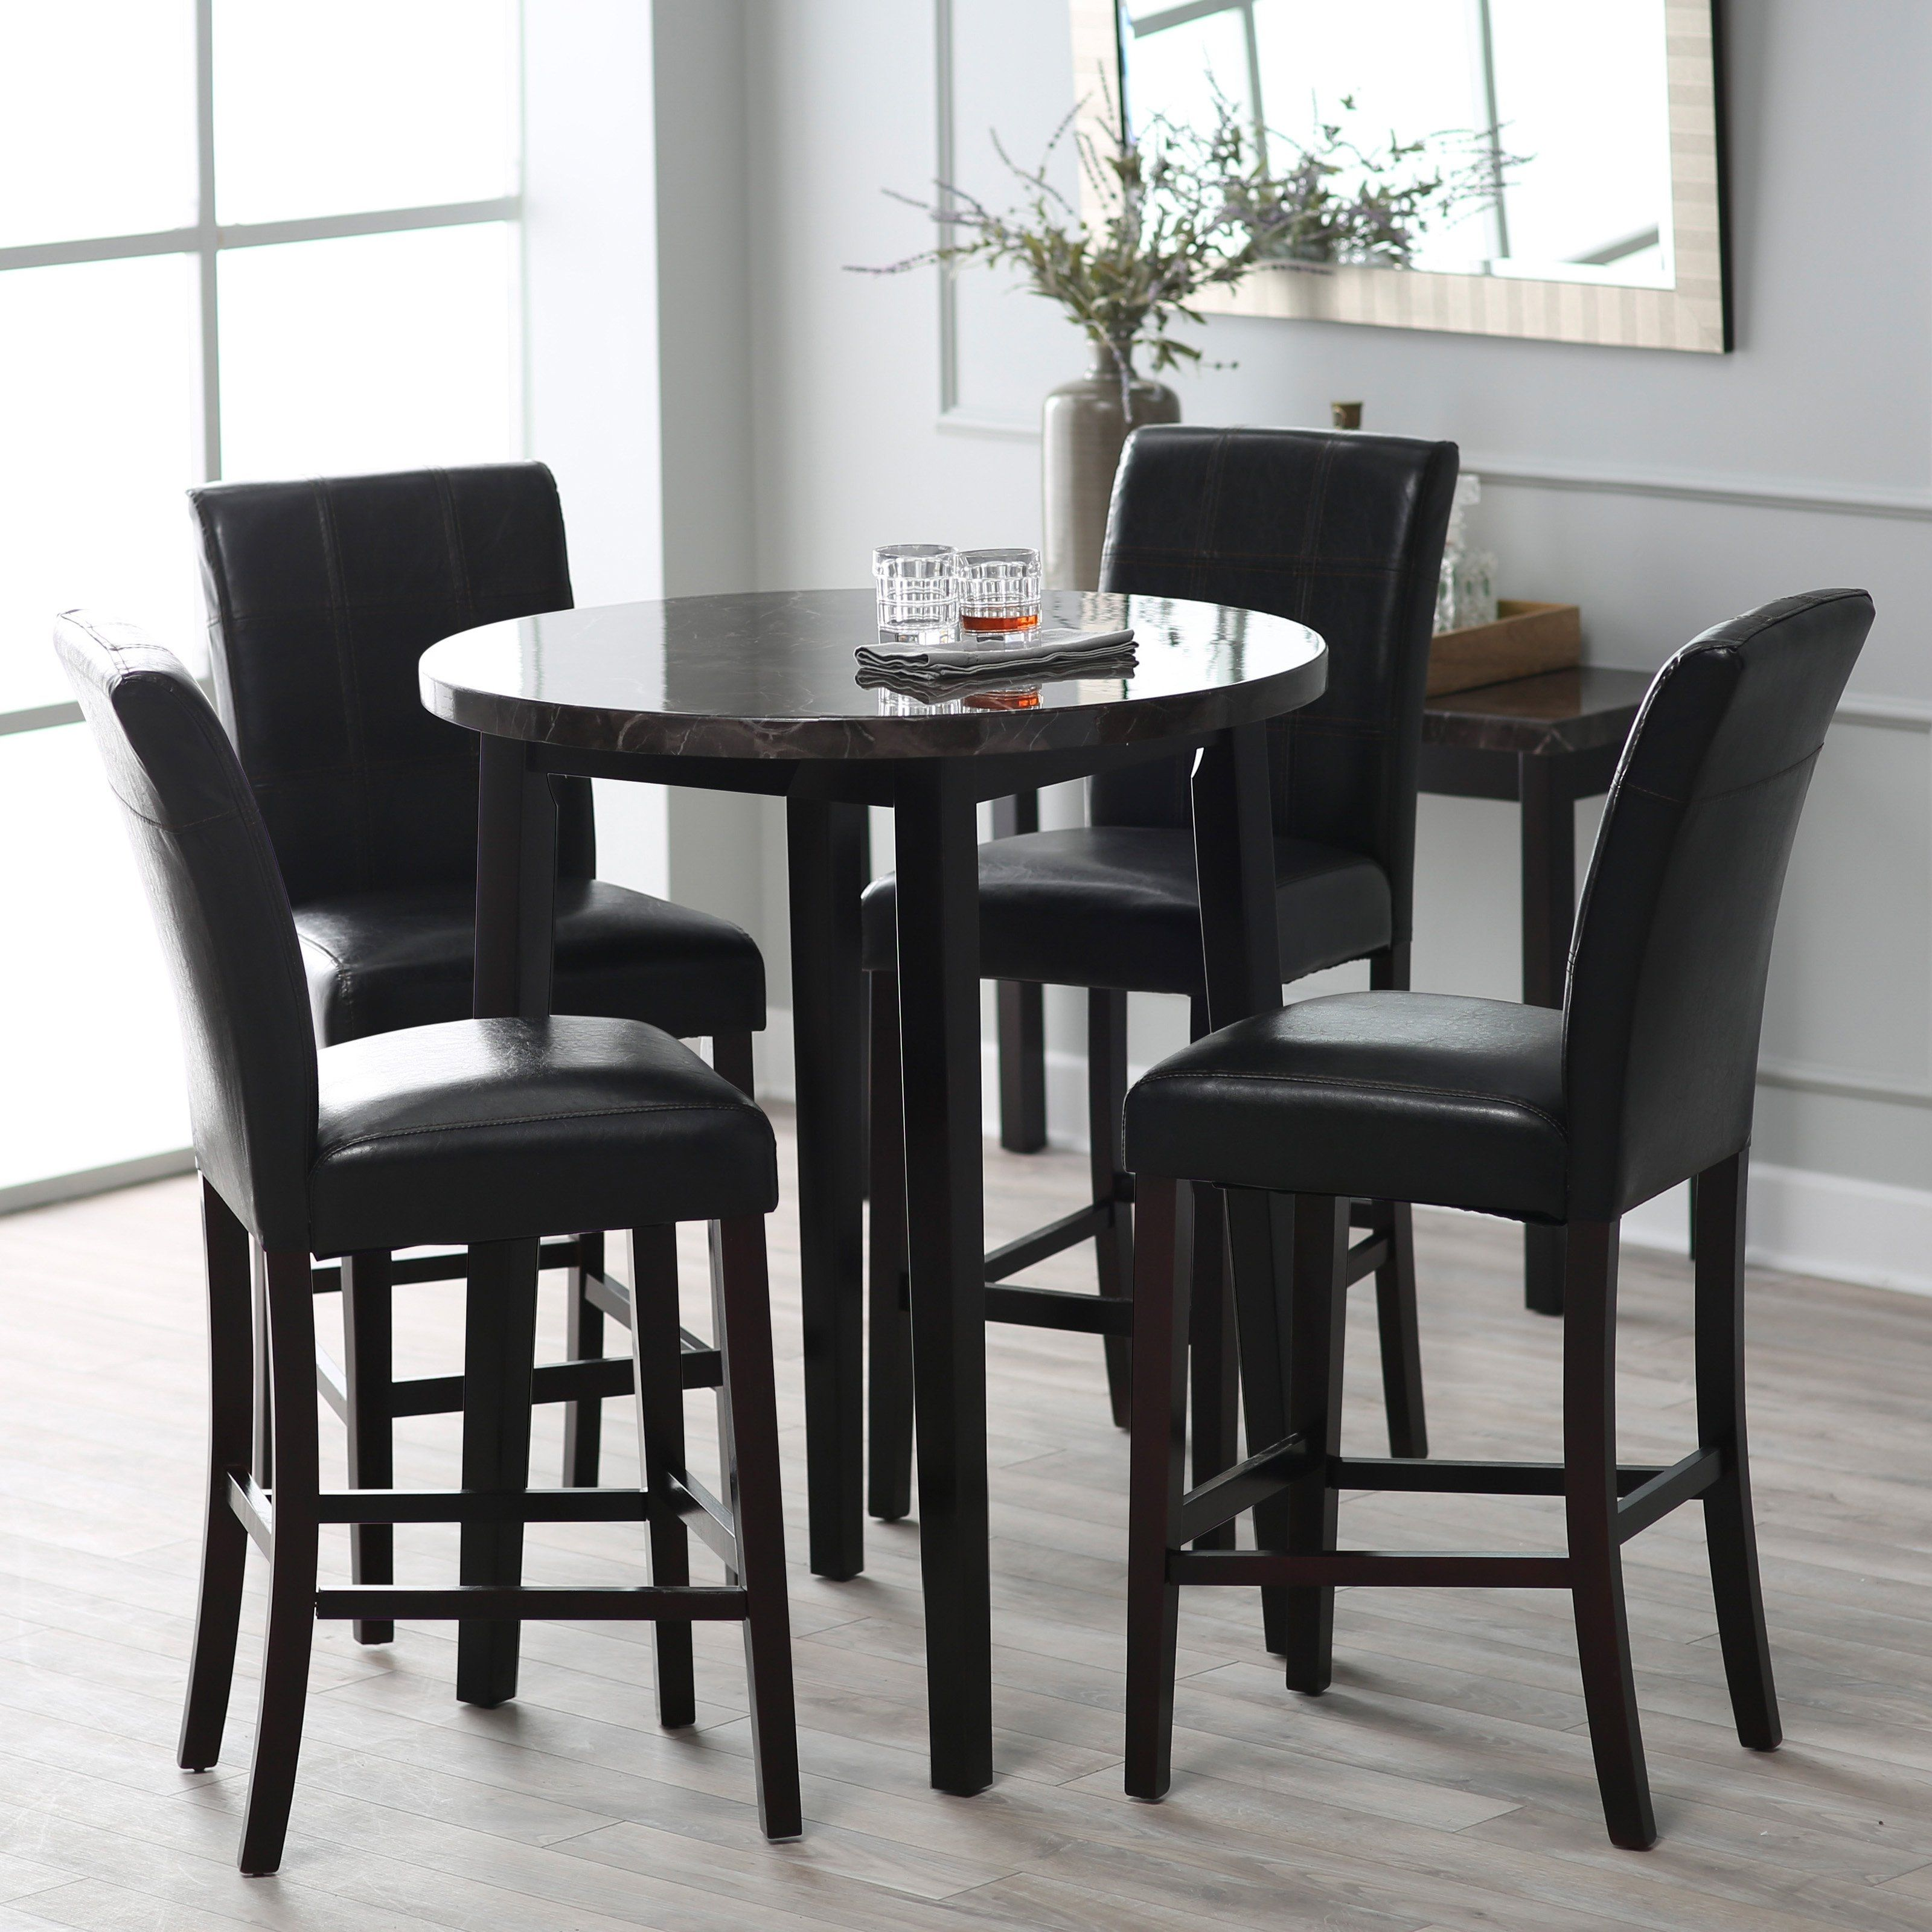 black high table and chairs  pub kitchen table kitchen